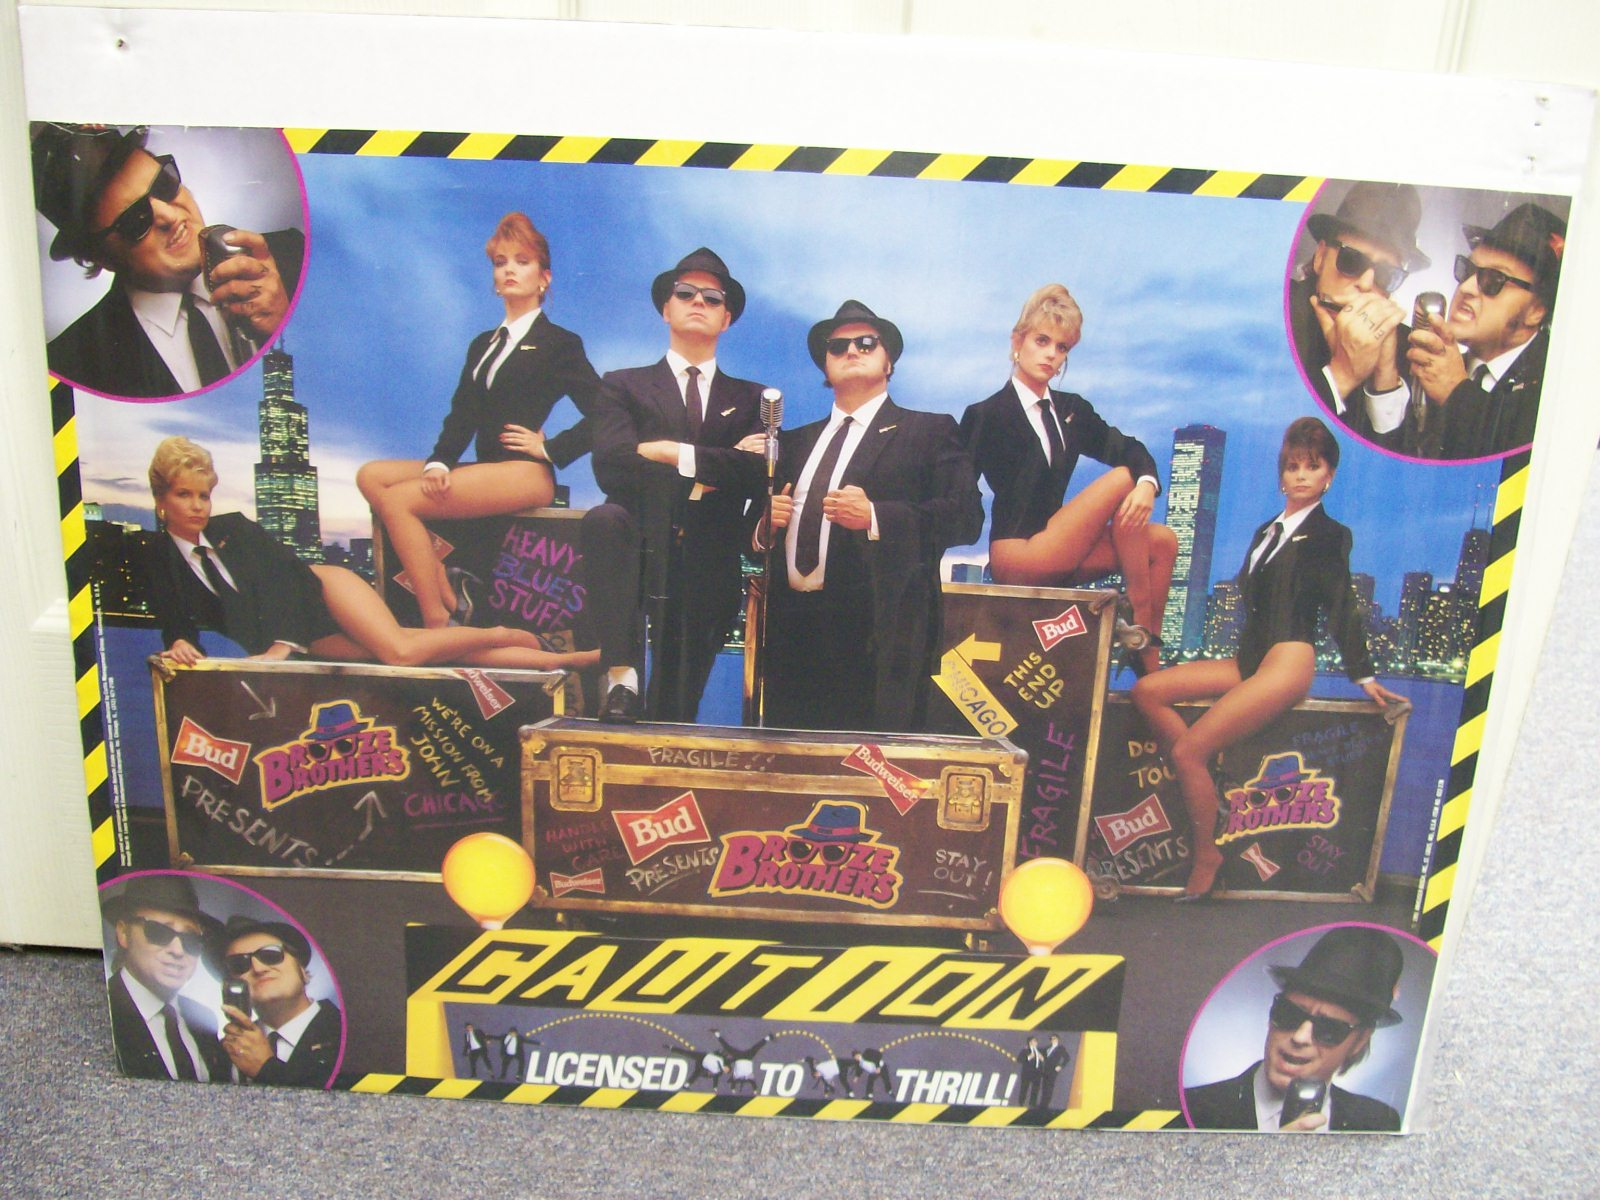 BLUES BROTHERS 1991 ANHEUSER BUSCH POSTER-RARE